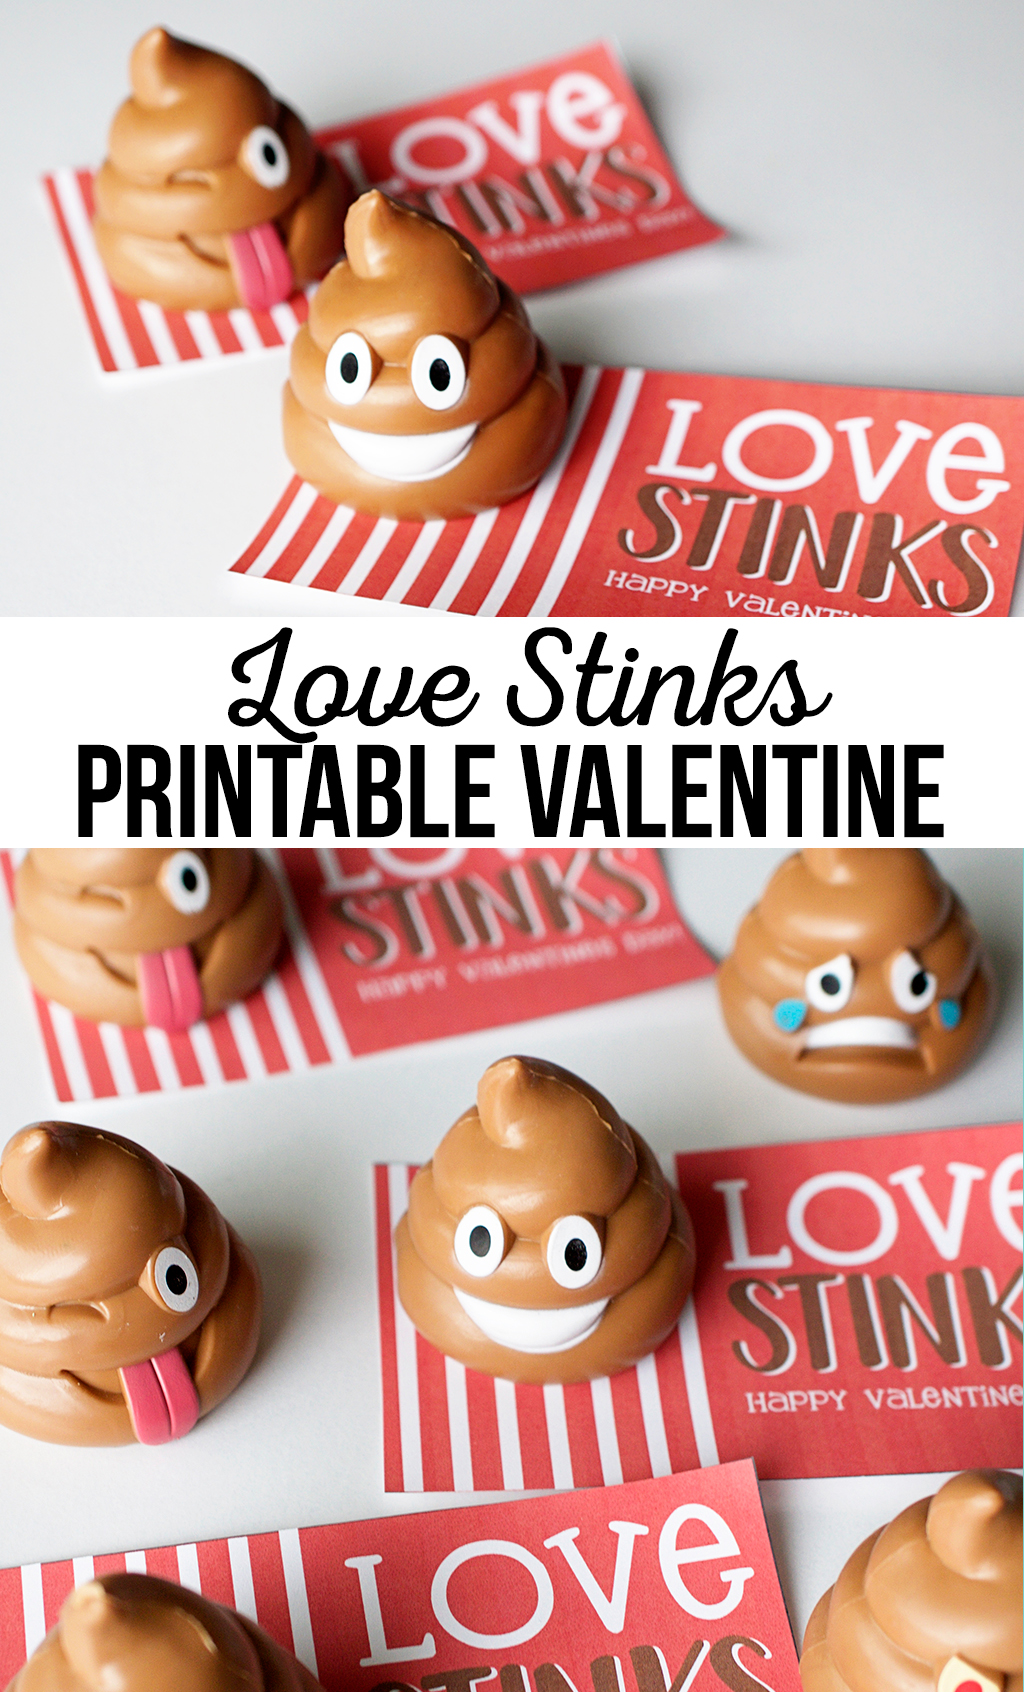 Love stinks printable Valentine